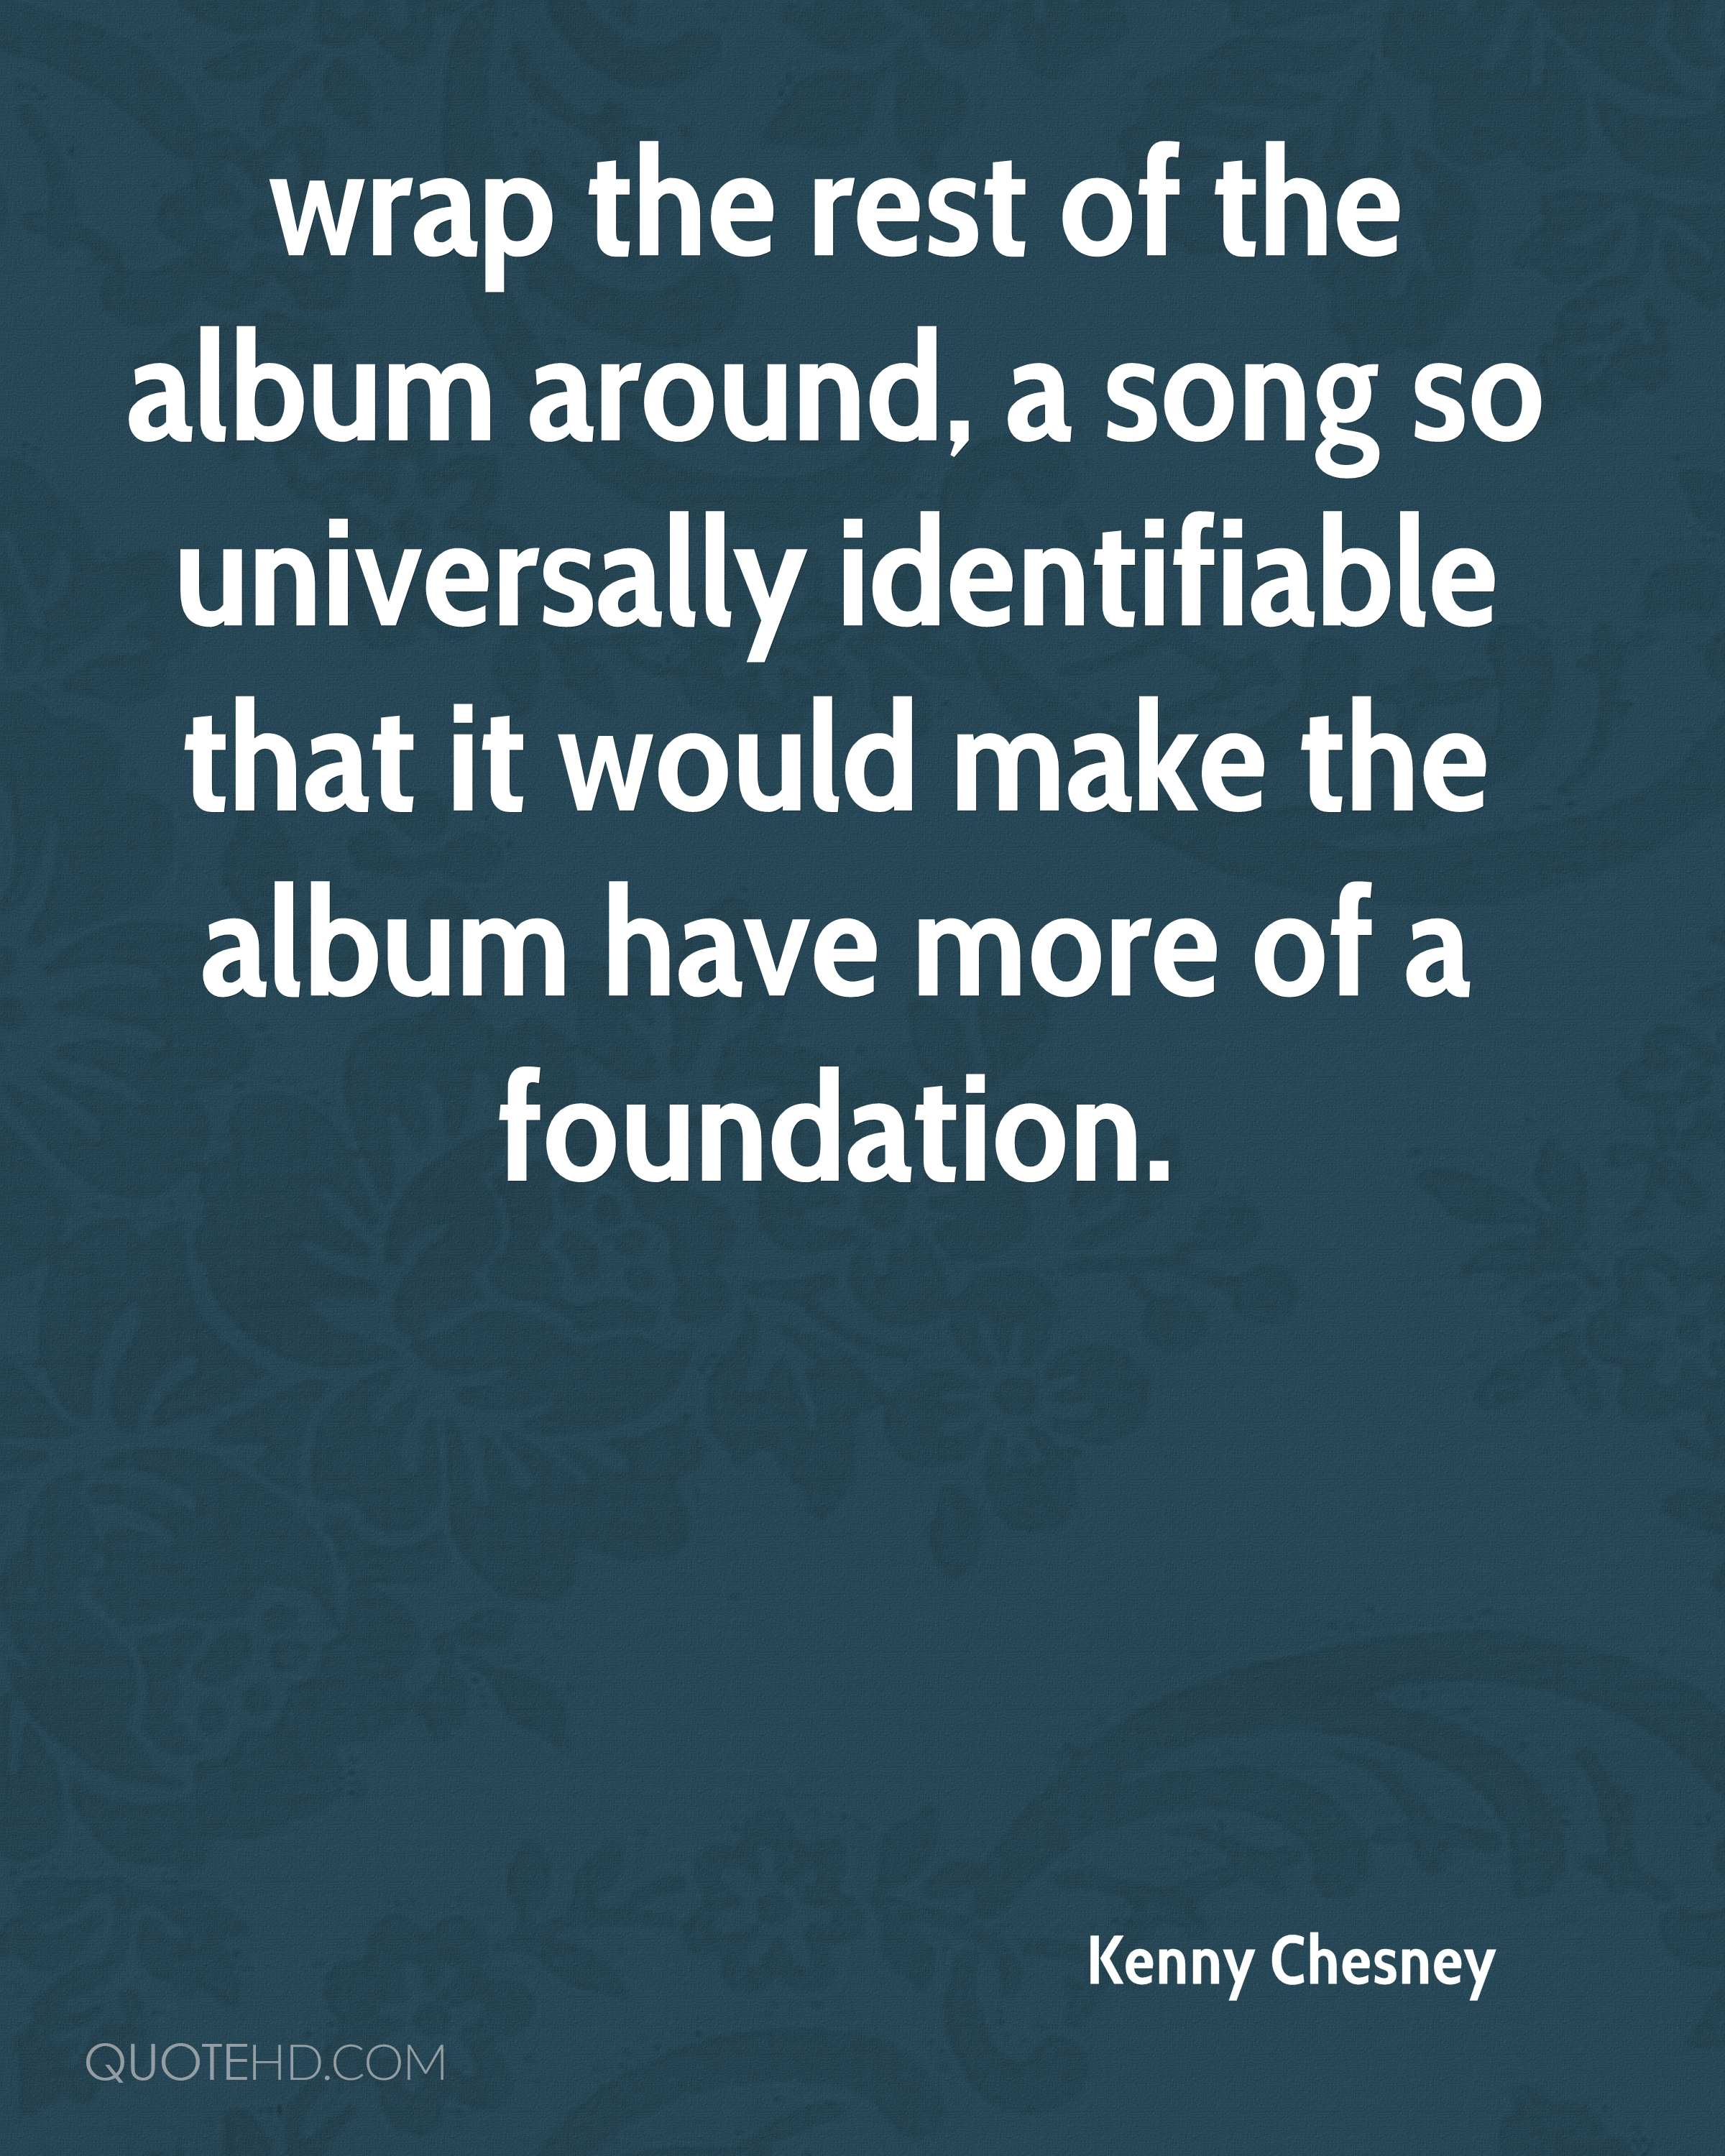 Kenny Chesney Quotes | QuoteHD